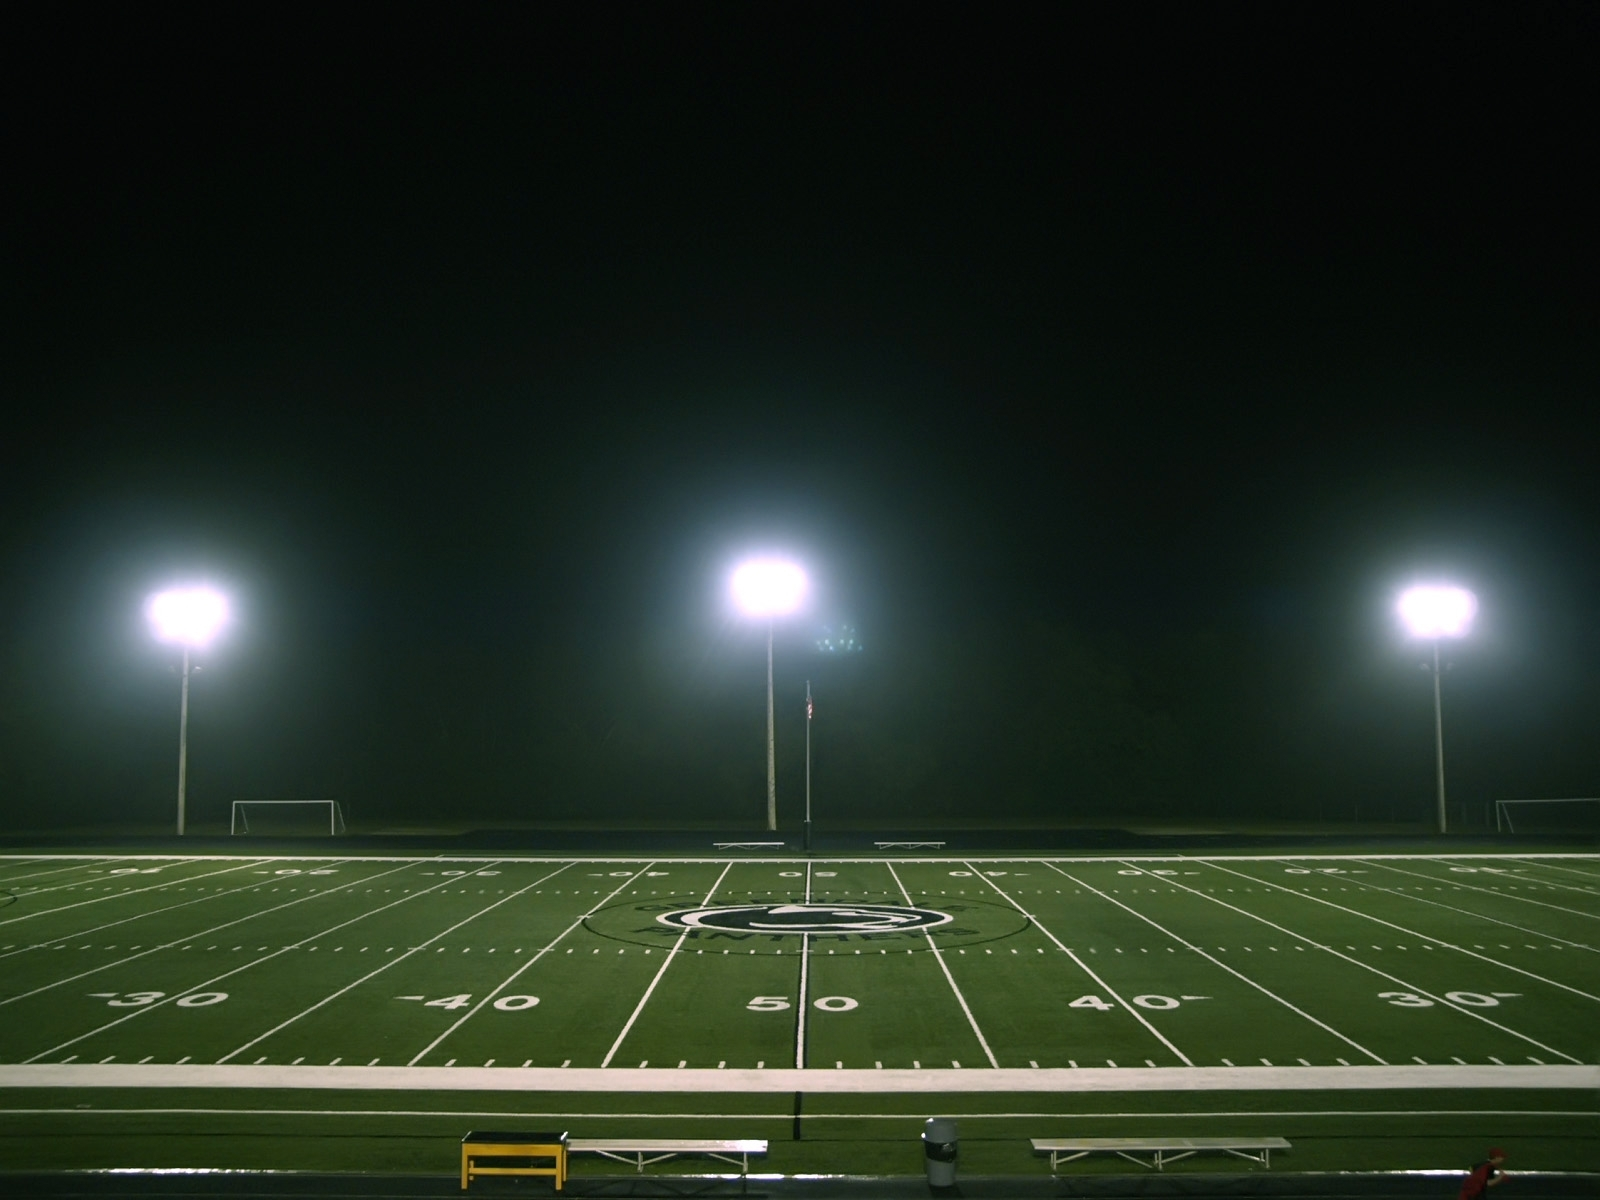 football field wallpaper 24418 1600x1200 px ~ hdwallsource